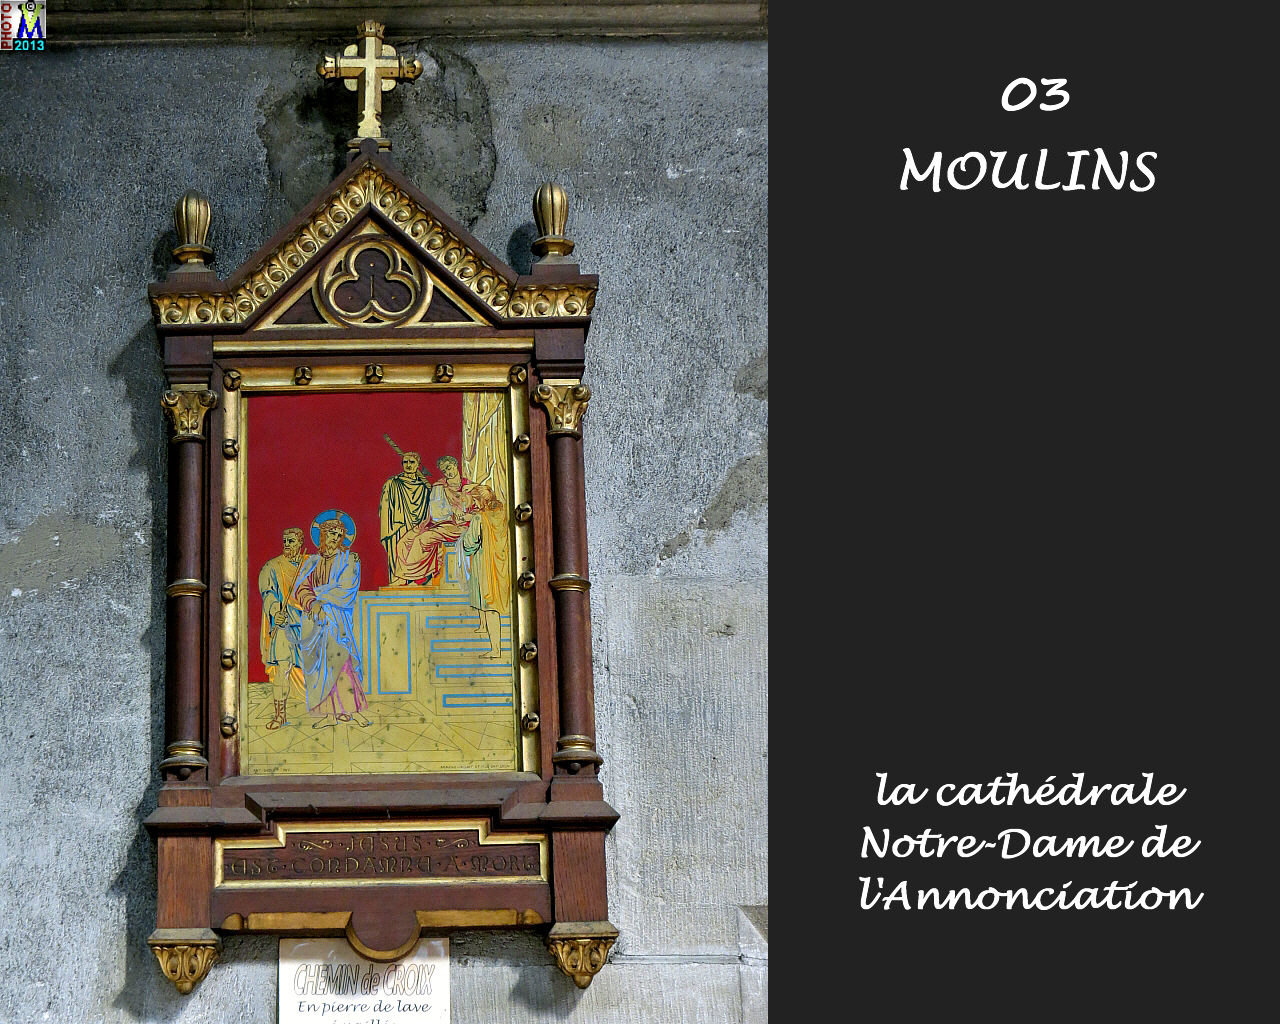 03MOULINS_cathedrale_280.jpg